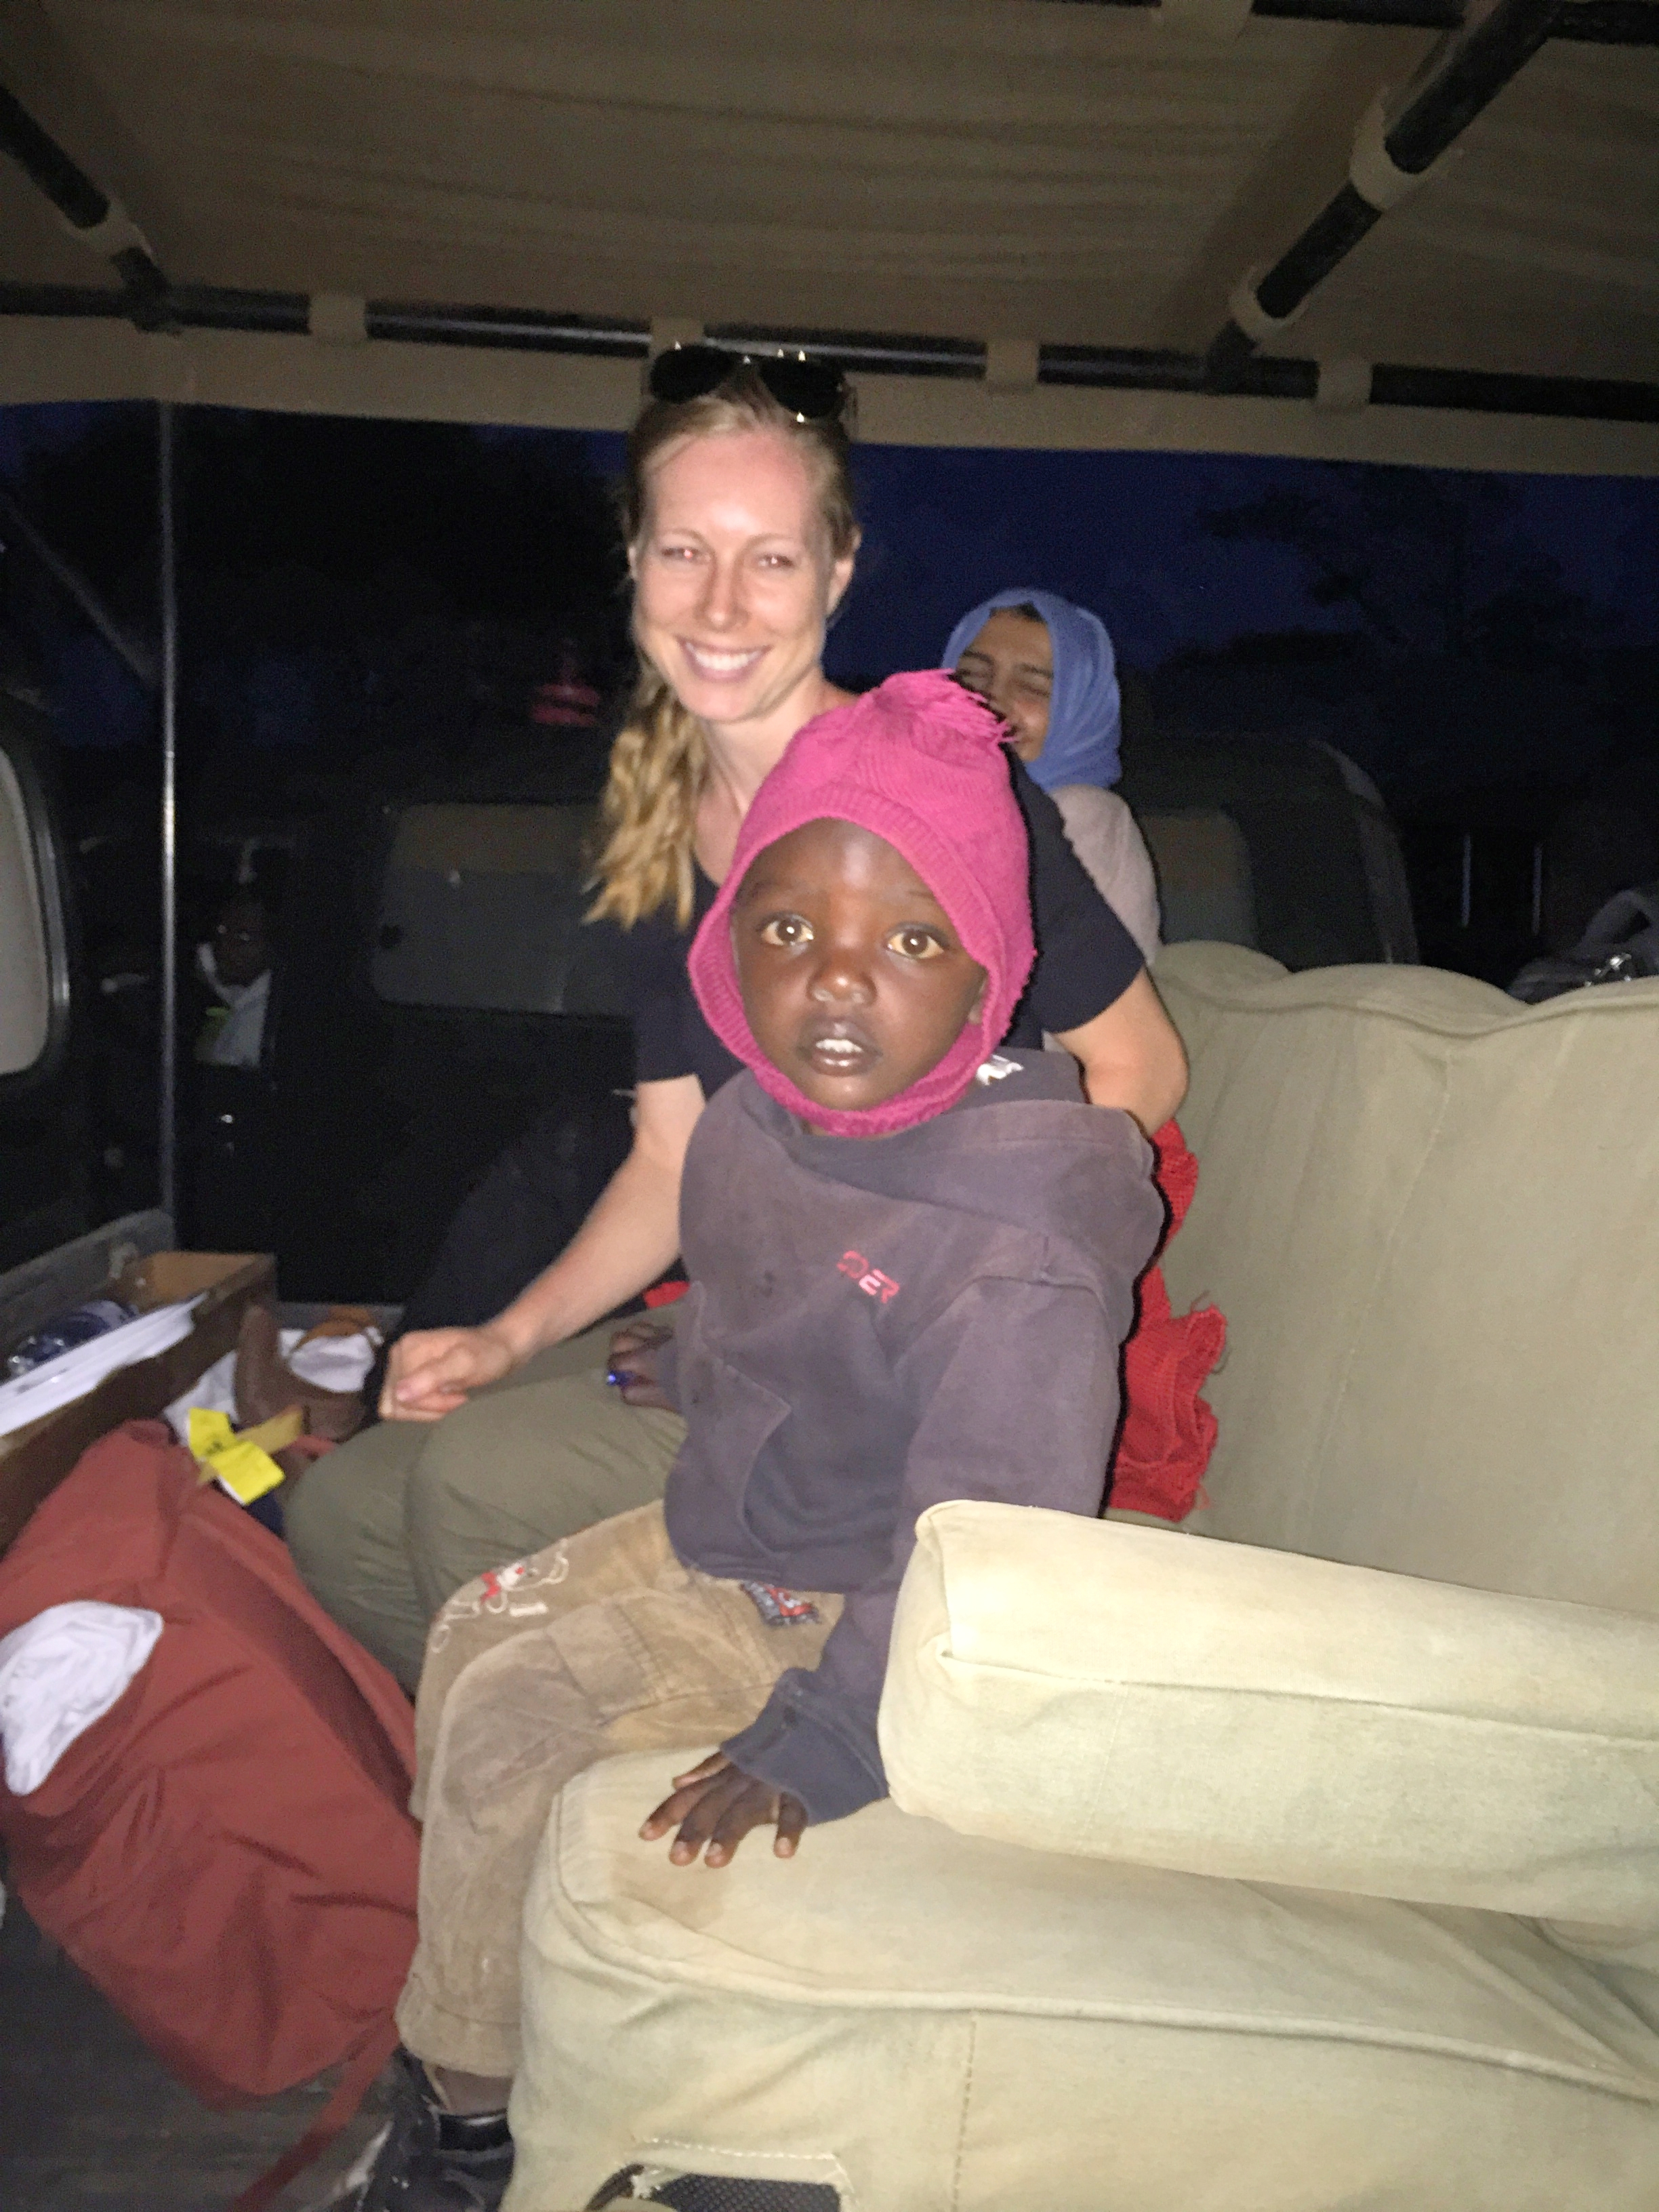 A sweet moment when this little boy, who had befriended Alex, jumped in the jeep with us when we were leaving. His mom eventually got him out of the jeep with the help of a lollipop we gave him.